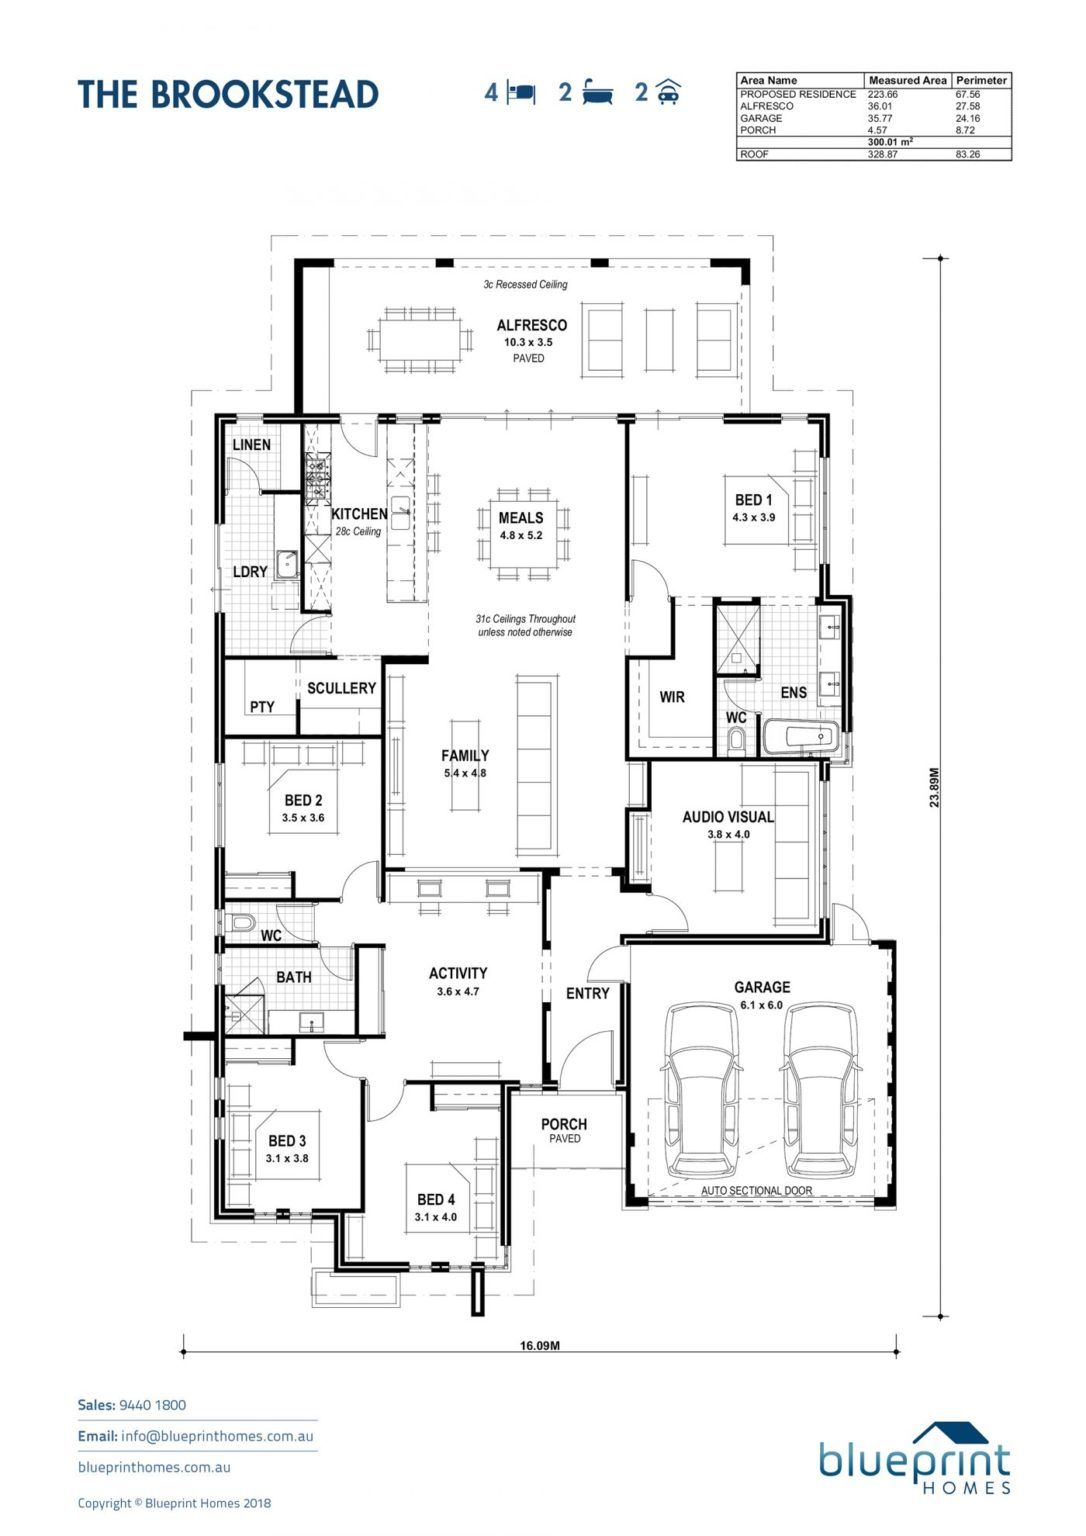 Home Designs Perth Blueprint Homes Display Homes House Plans South Africa House Design